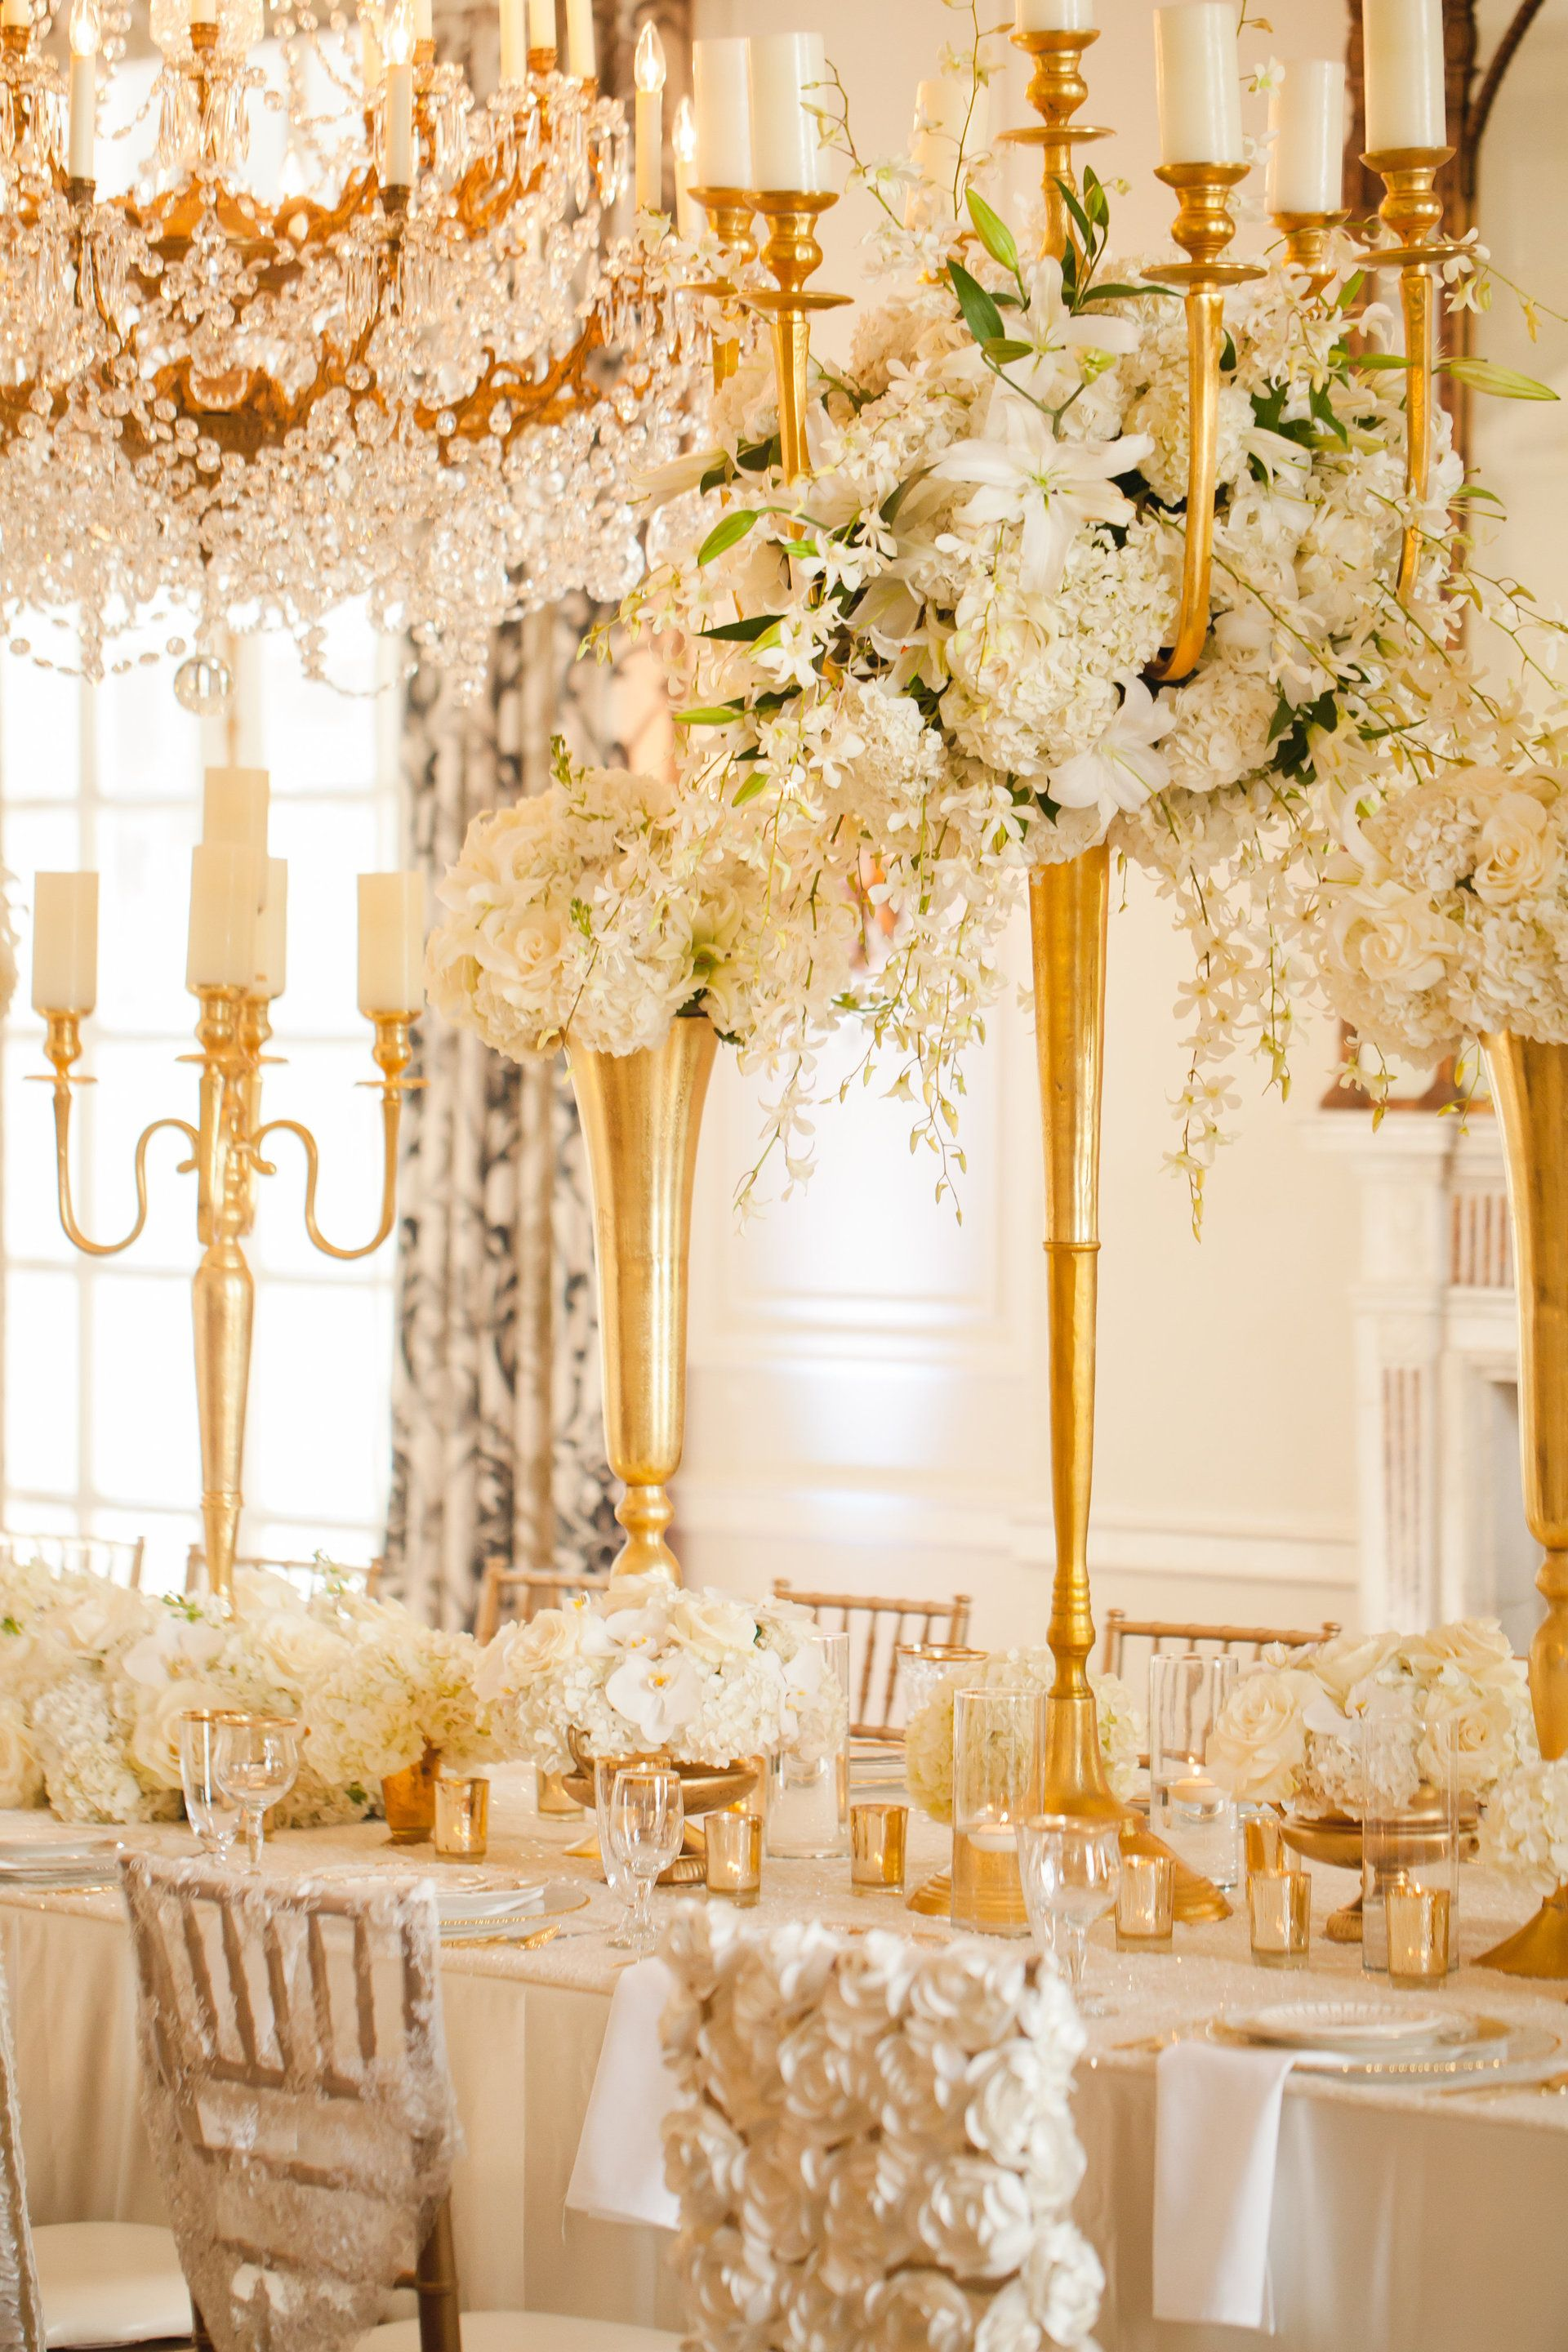 Glamorous Gold Indoor Wedding Reception Tall Cream Colored Floral Centerpieces Elegant Decor Ivory Wedding Decor Ivory Wedding Theme Gold Wedding Reception